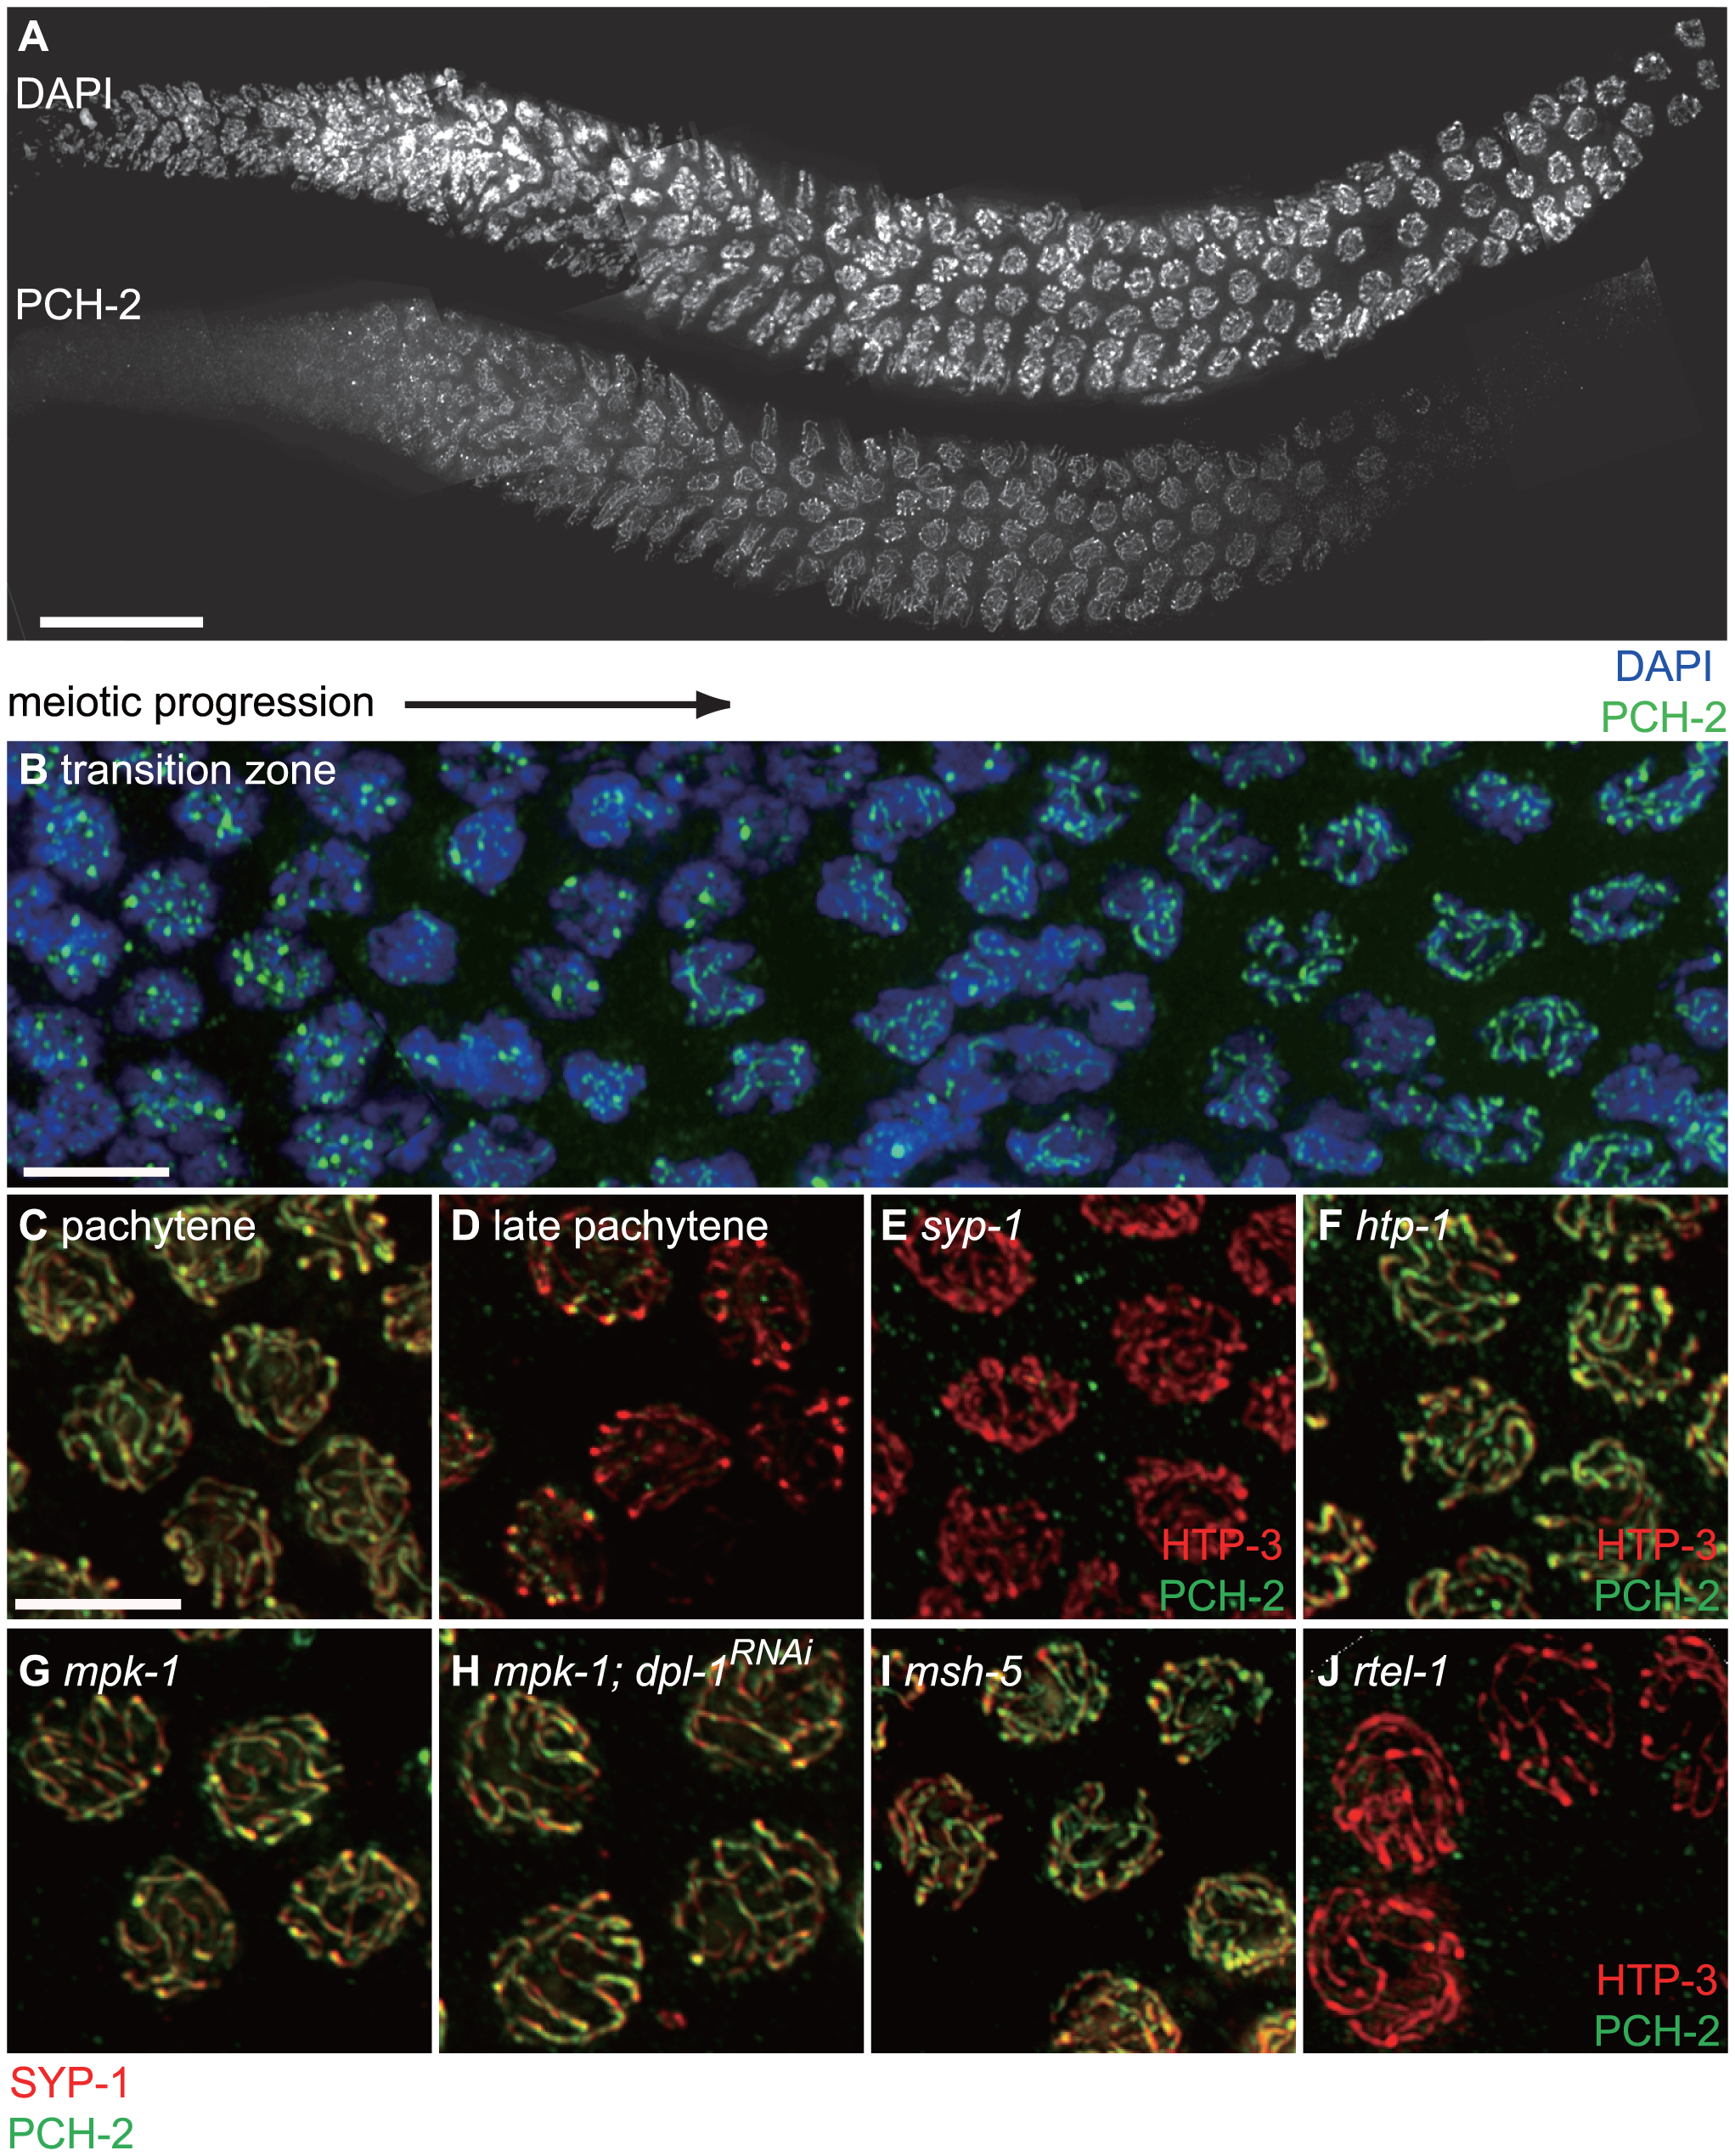 PCH-2 localizes to the SC when inter-homolog DNA repair mechanisms are active.